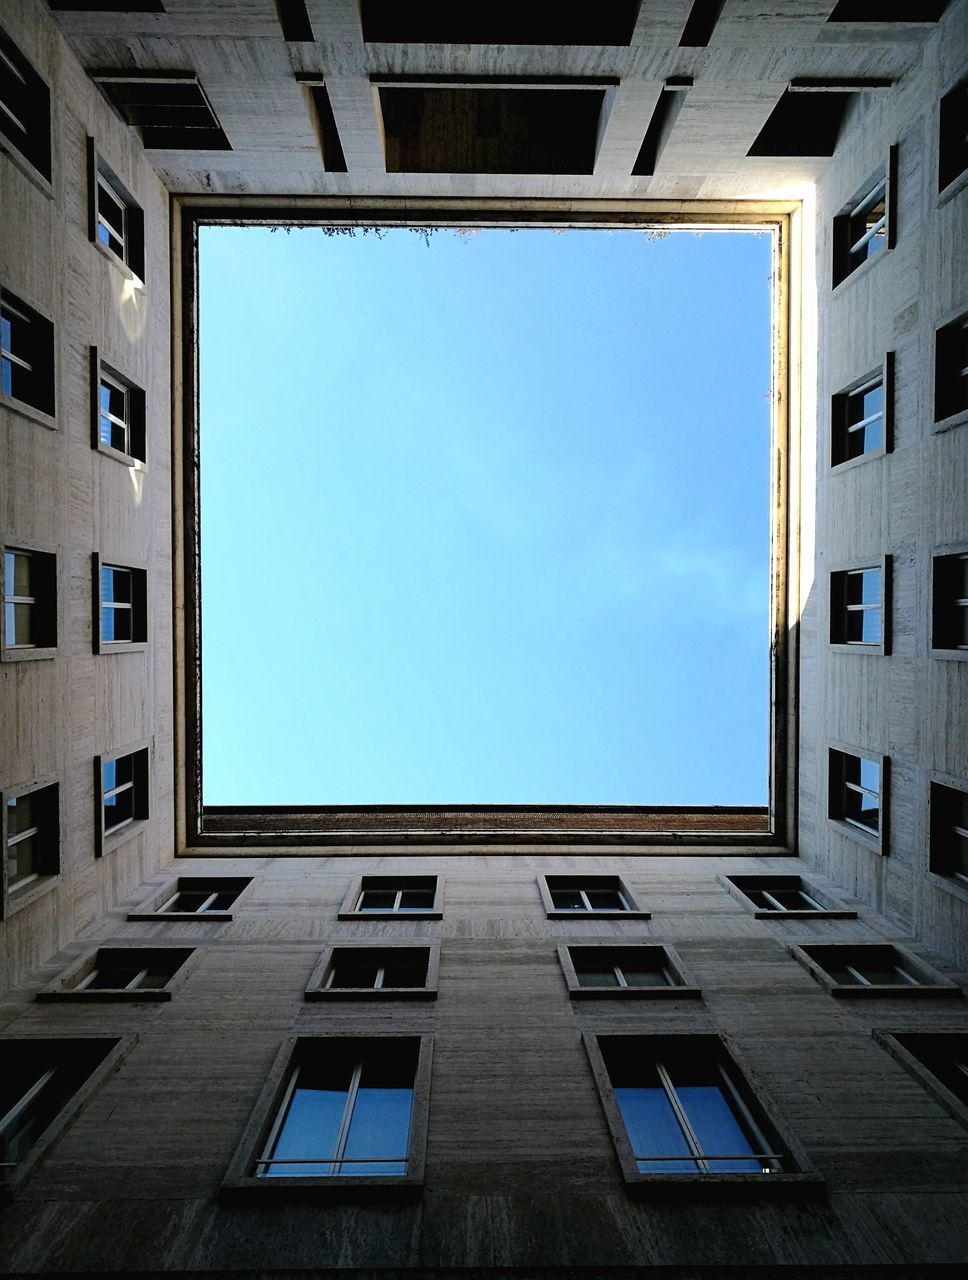 architecture, window, building exterior, built structure, low angle view, sky, blue, day, no people, sunlight, outdoors, city